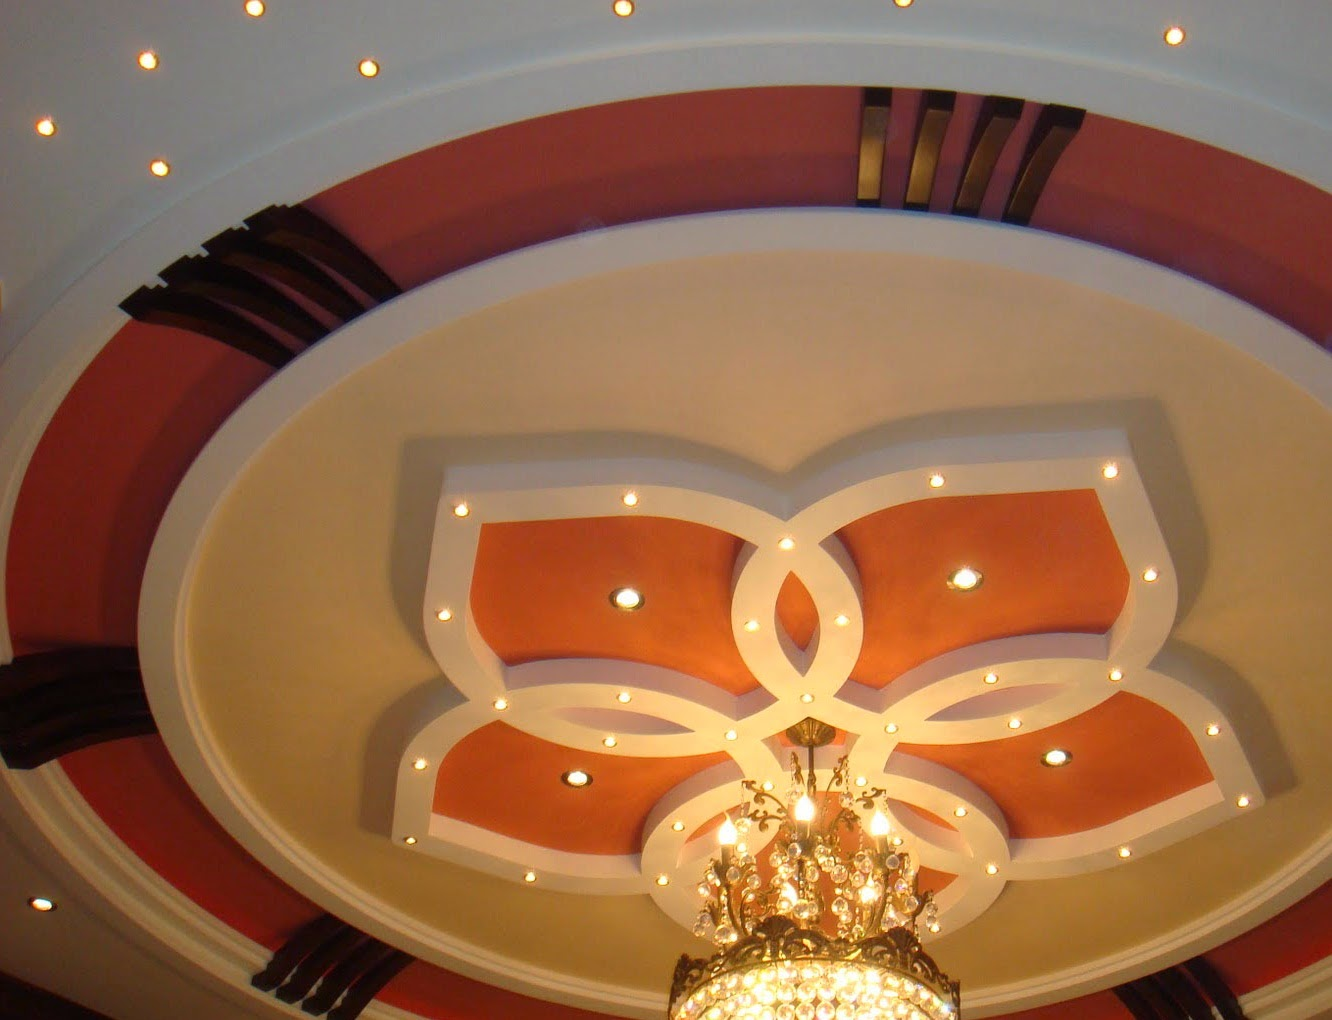 Salon marocaine moderne conception de faux plafond pour for Decoration platre salon